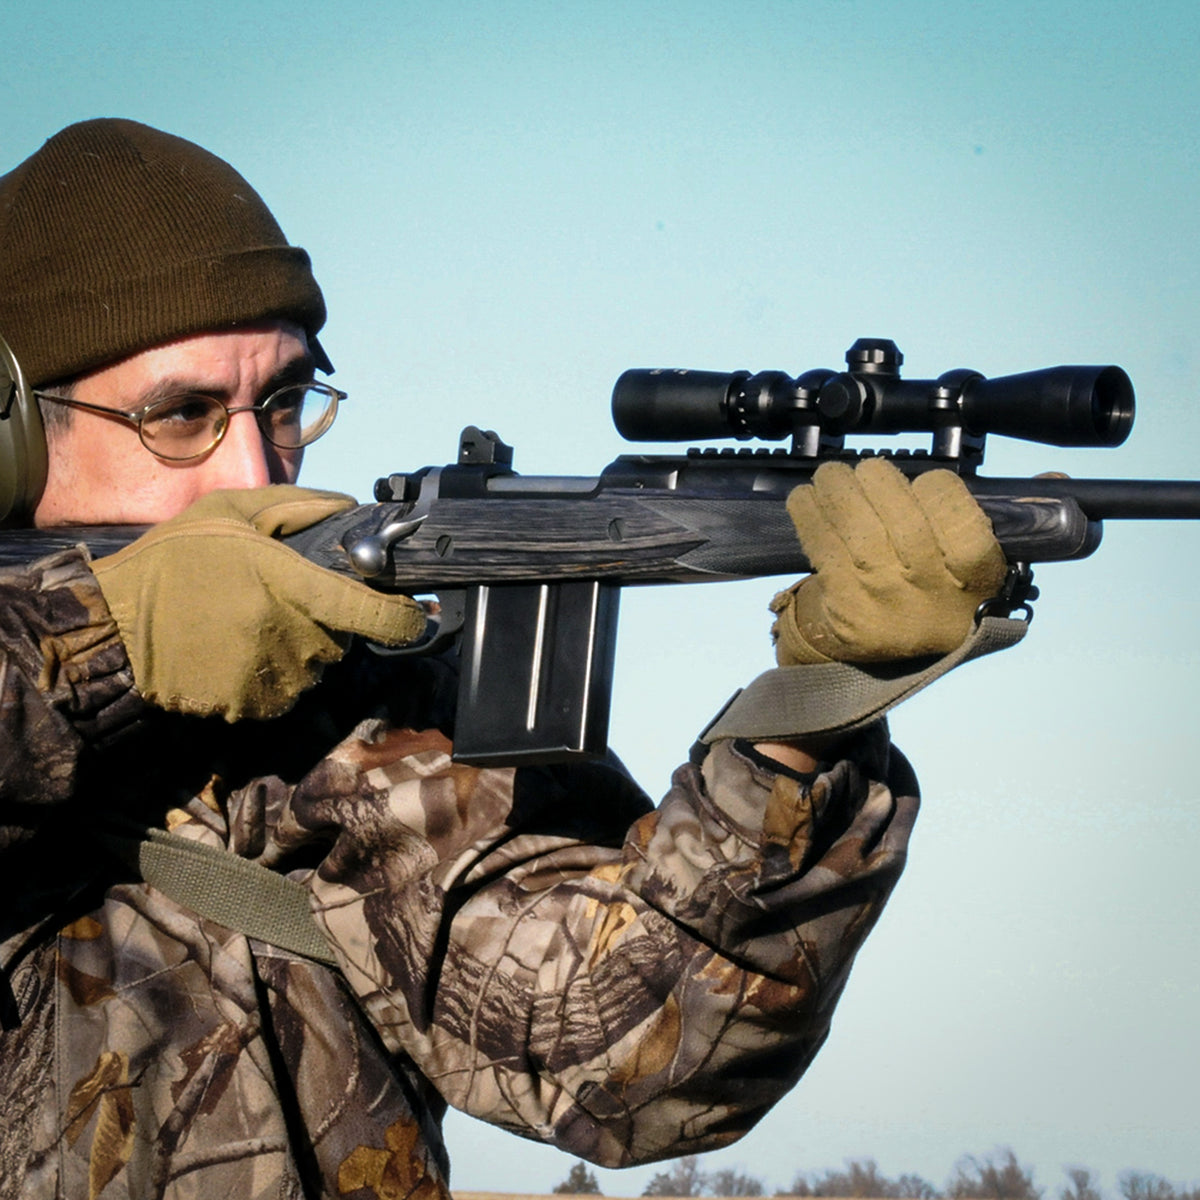 The Long Eye Relief Scope mounted on a Ruger Scout